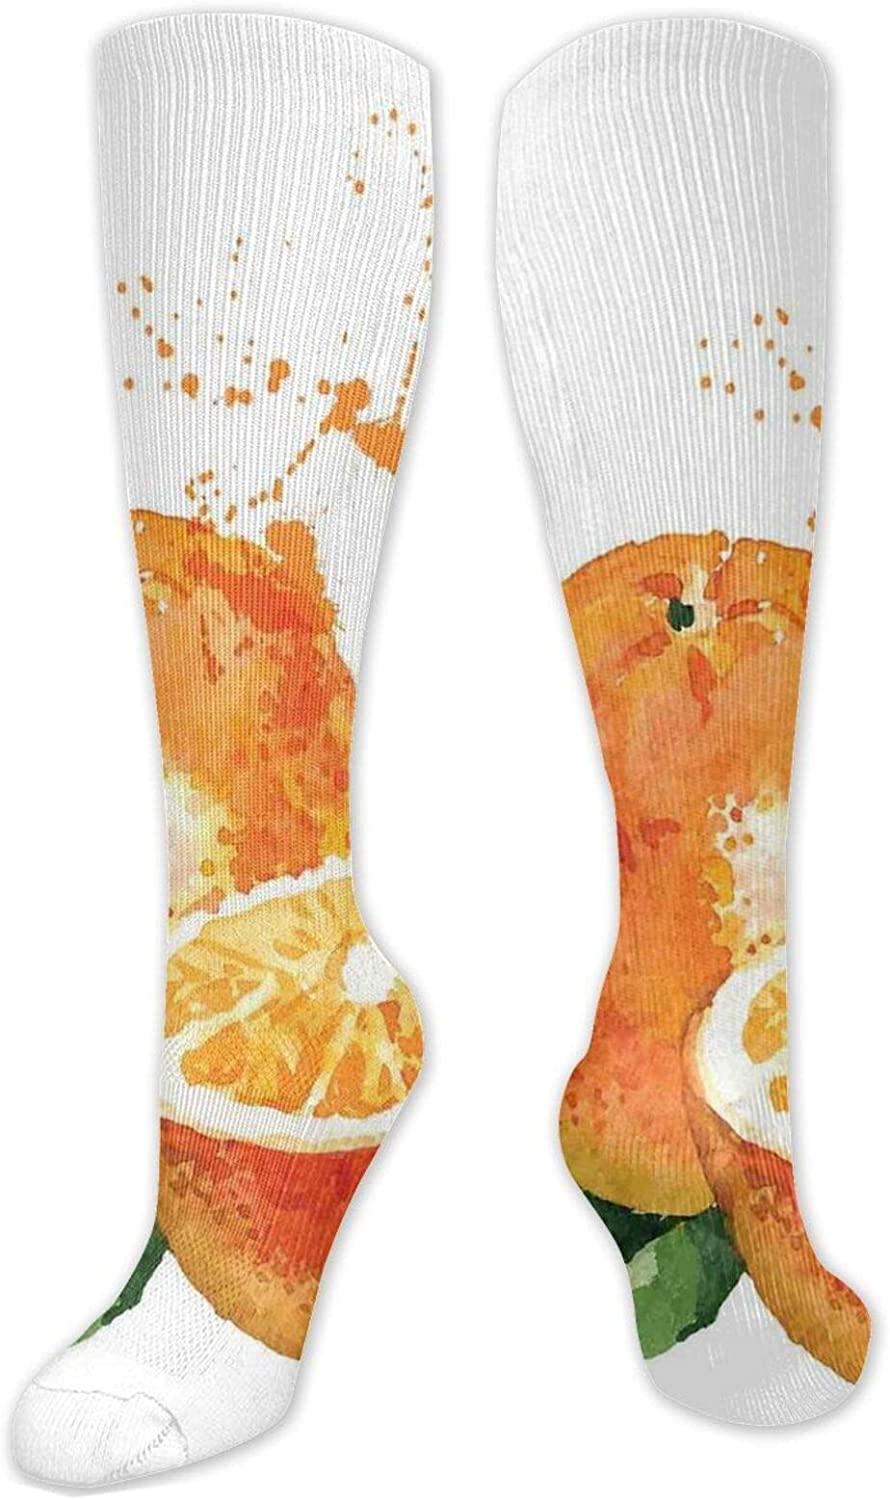 Compression High Socks-Canna Lily Flower Pattern On Blue Backdrop Blooming Foliage Best for Running,Athletic,Hiking,Travel,Flight